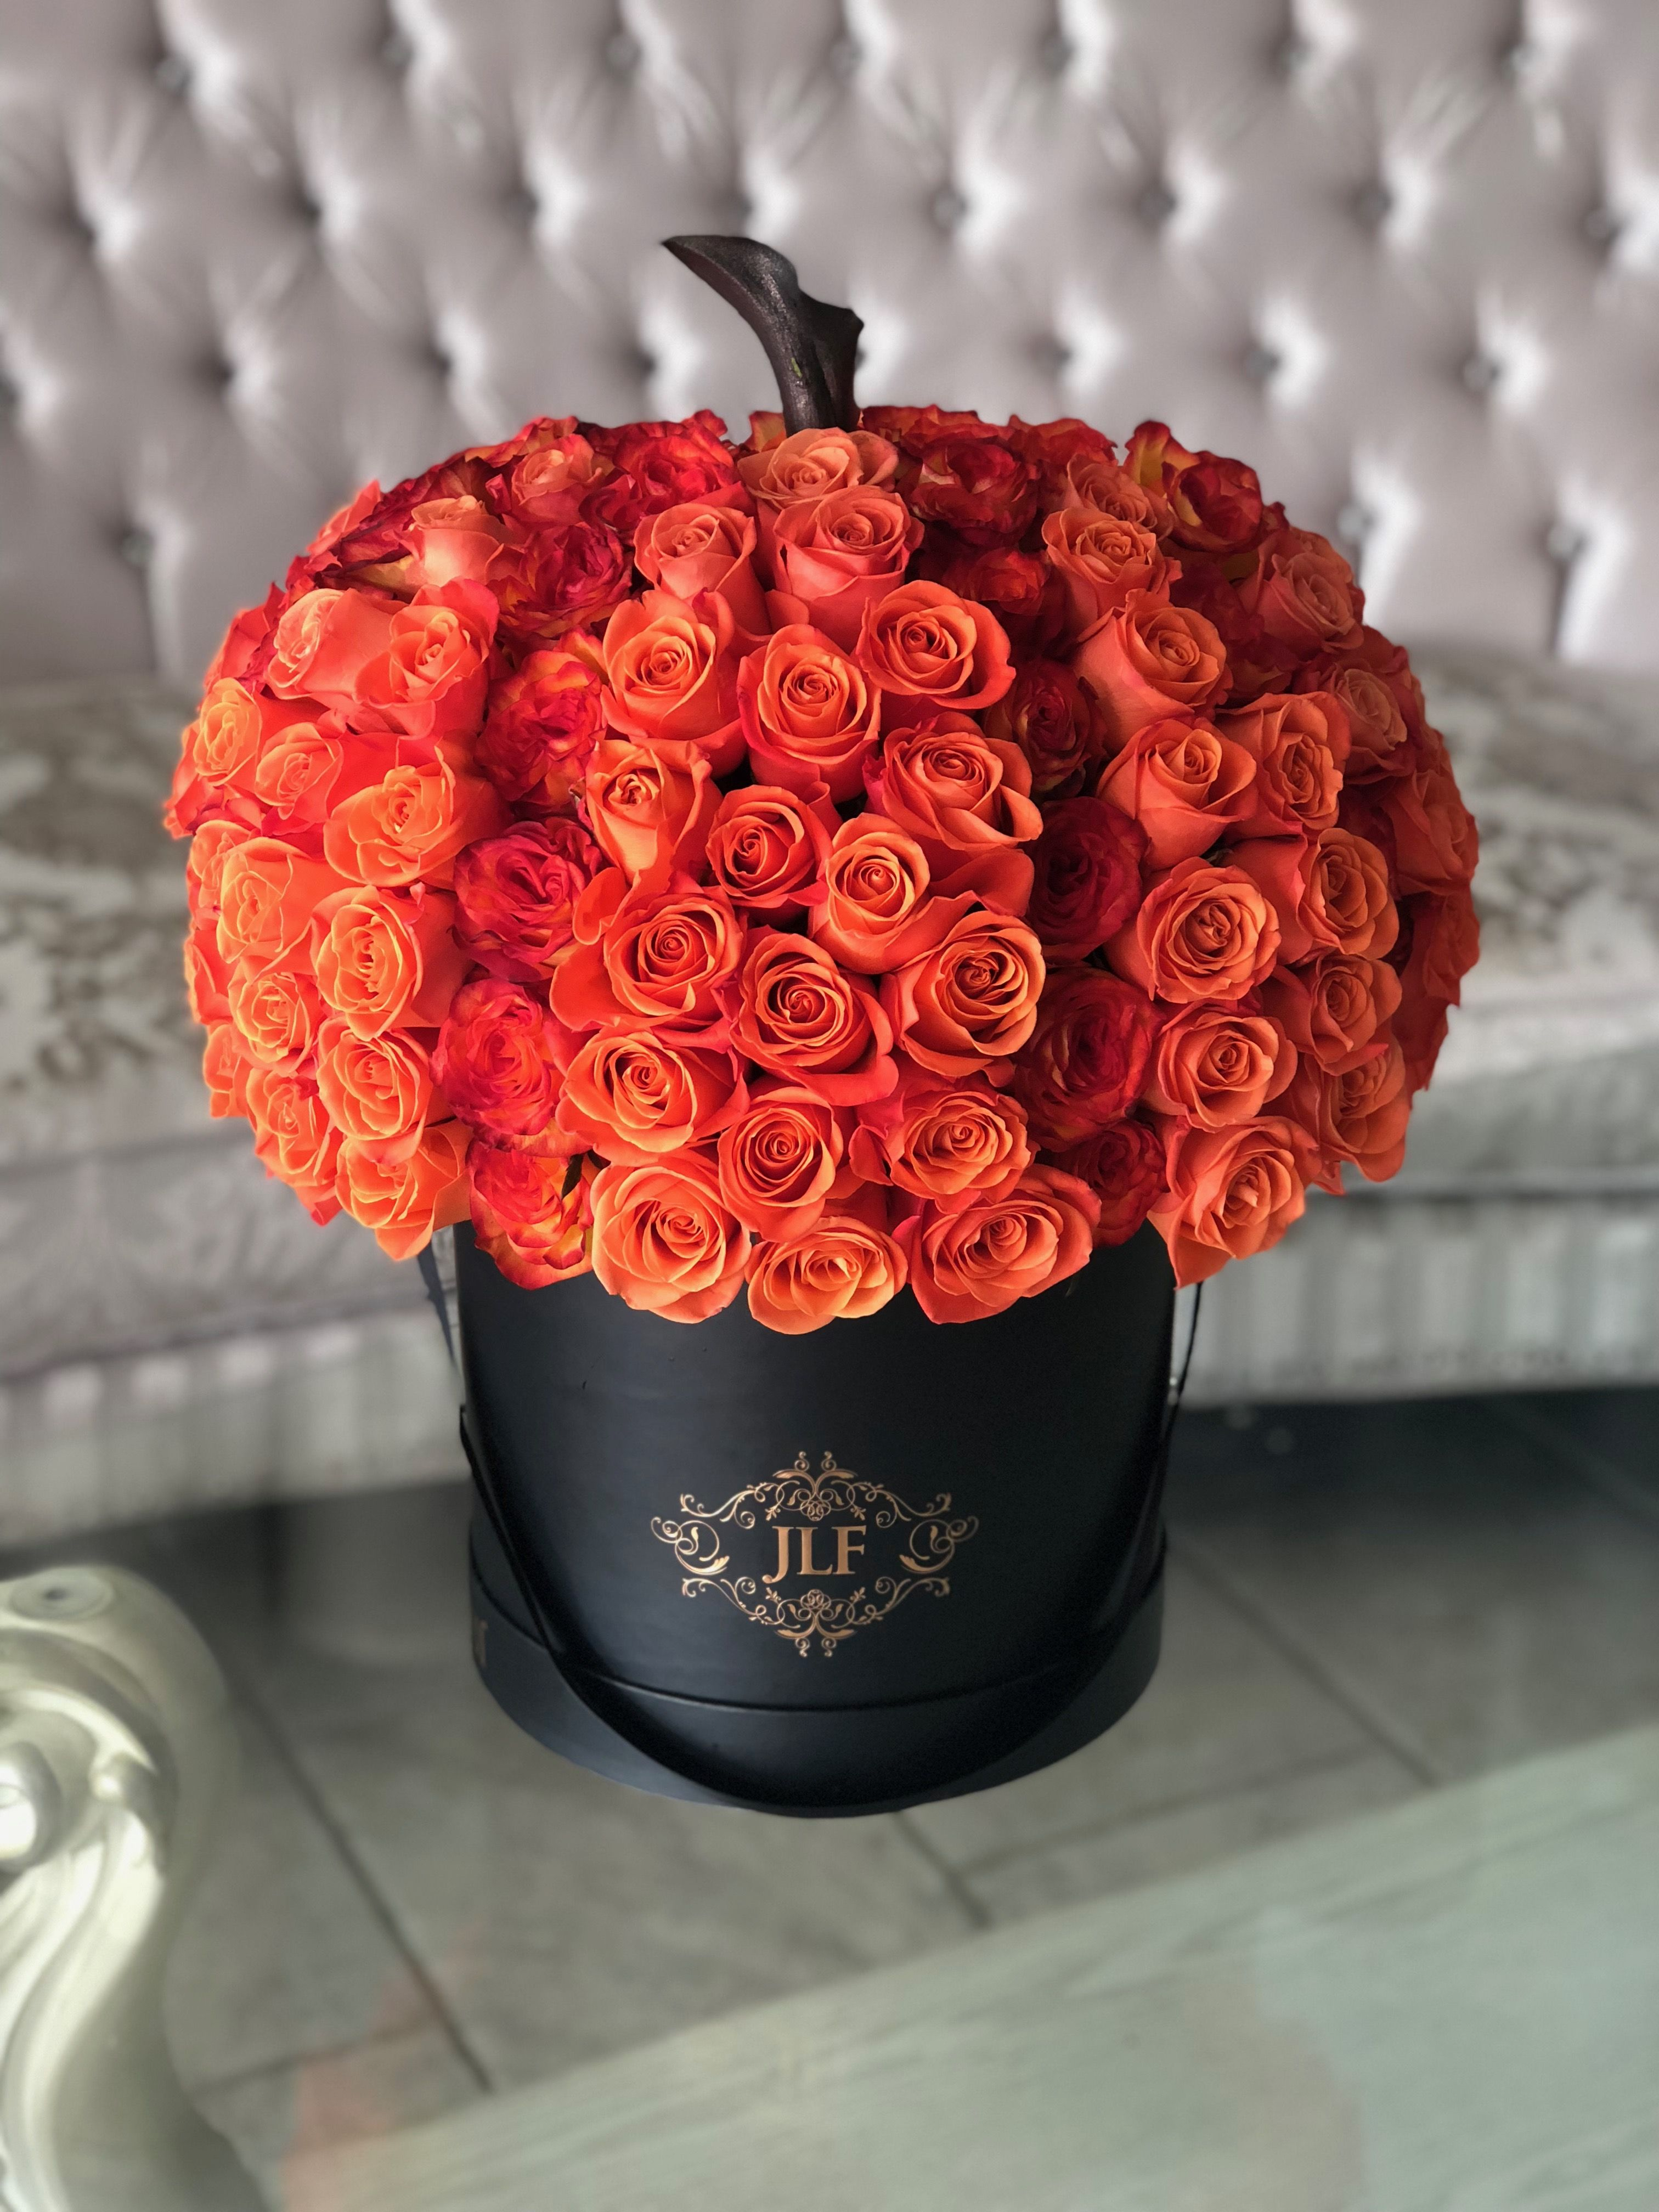 JLF OrangeRoses Pumpkin Same day flower delivery